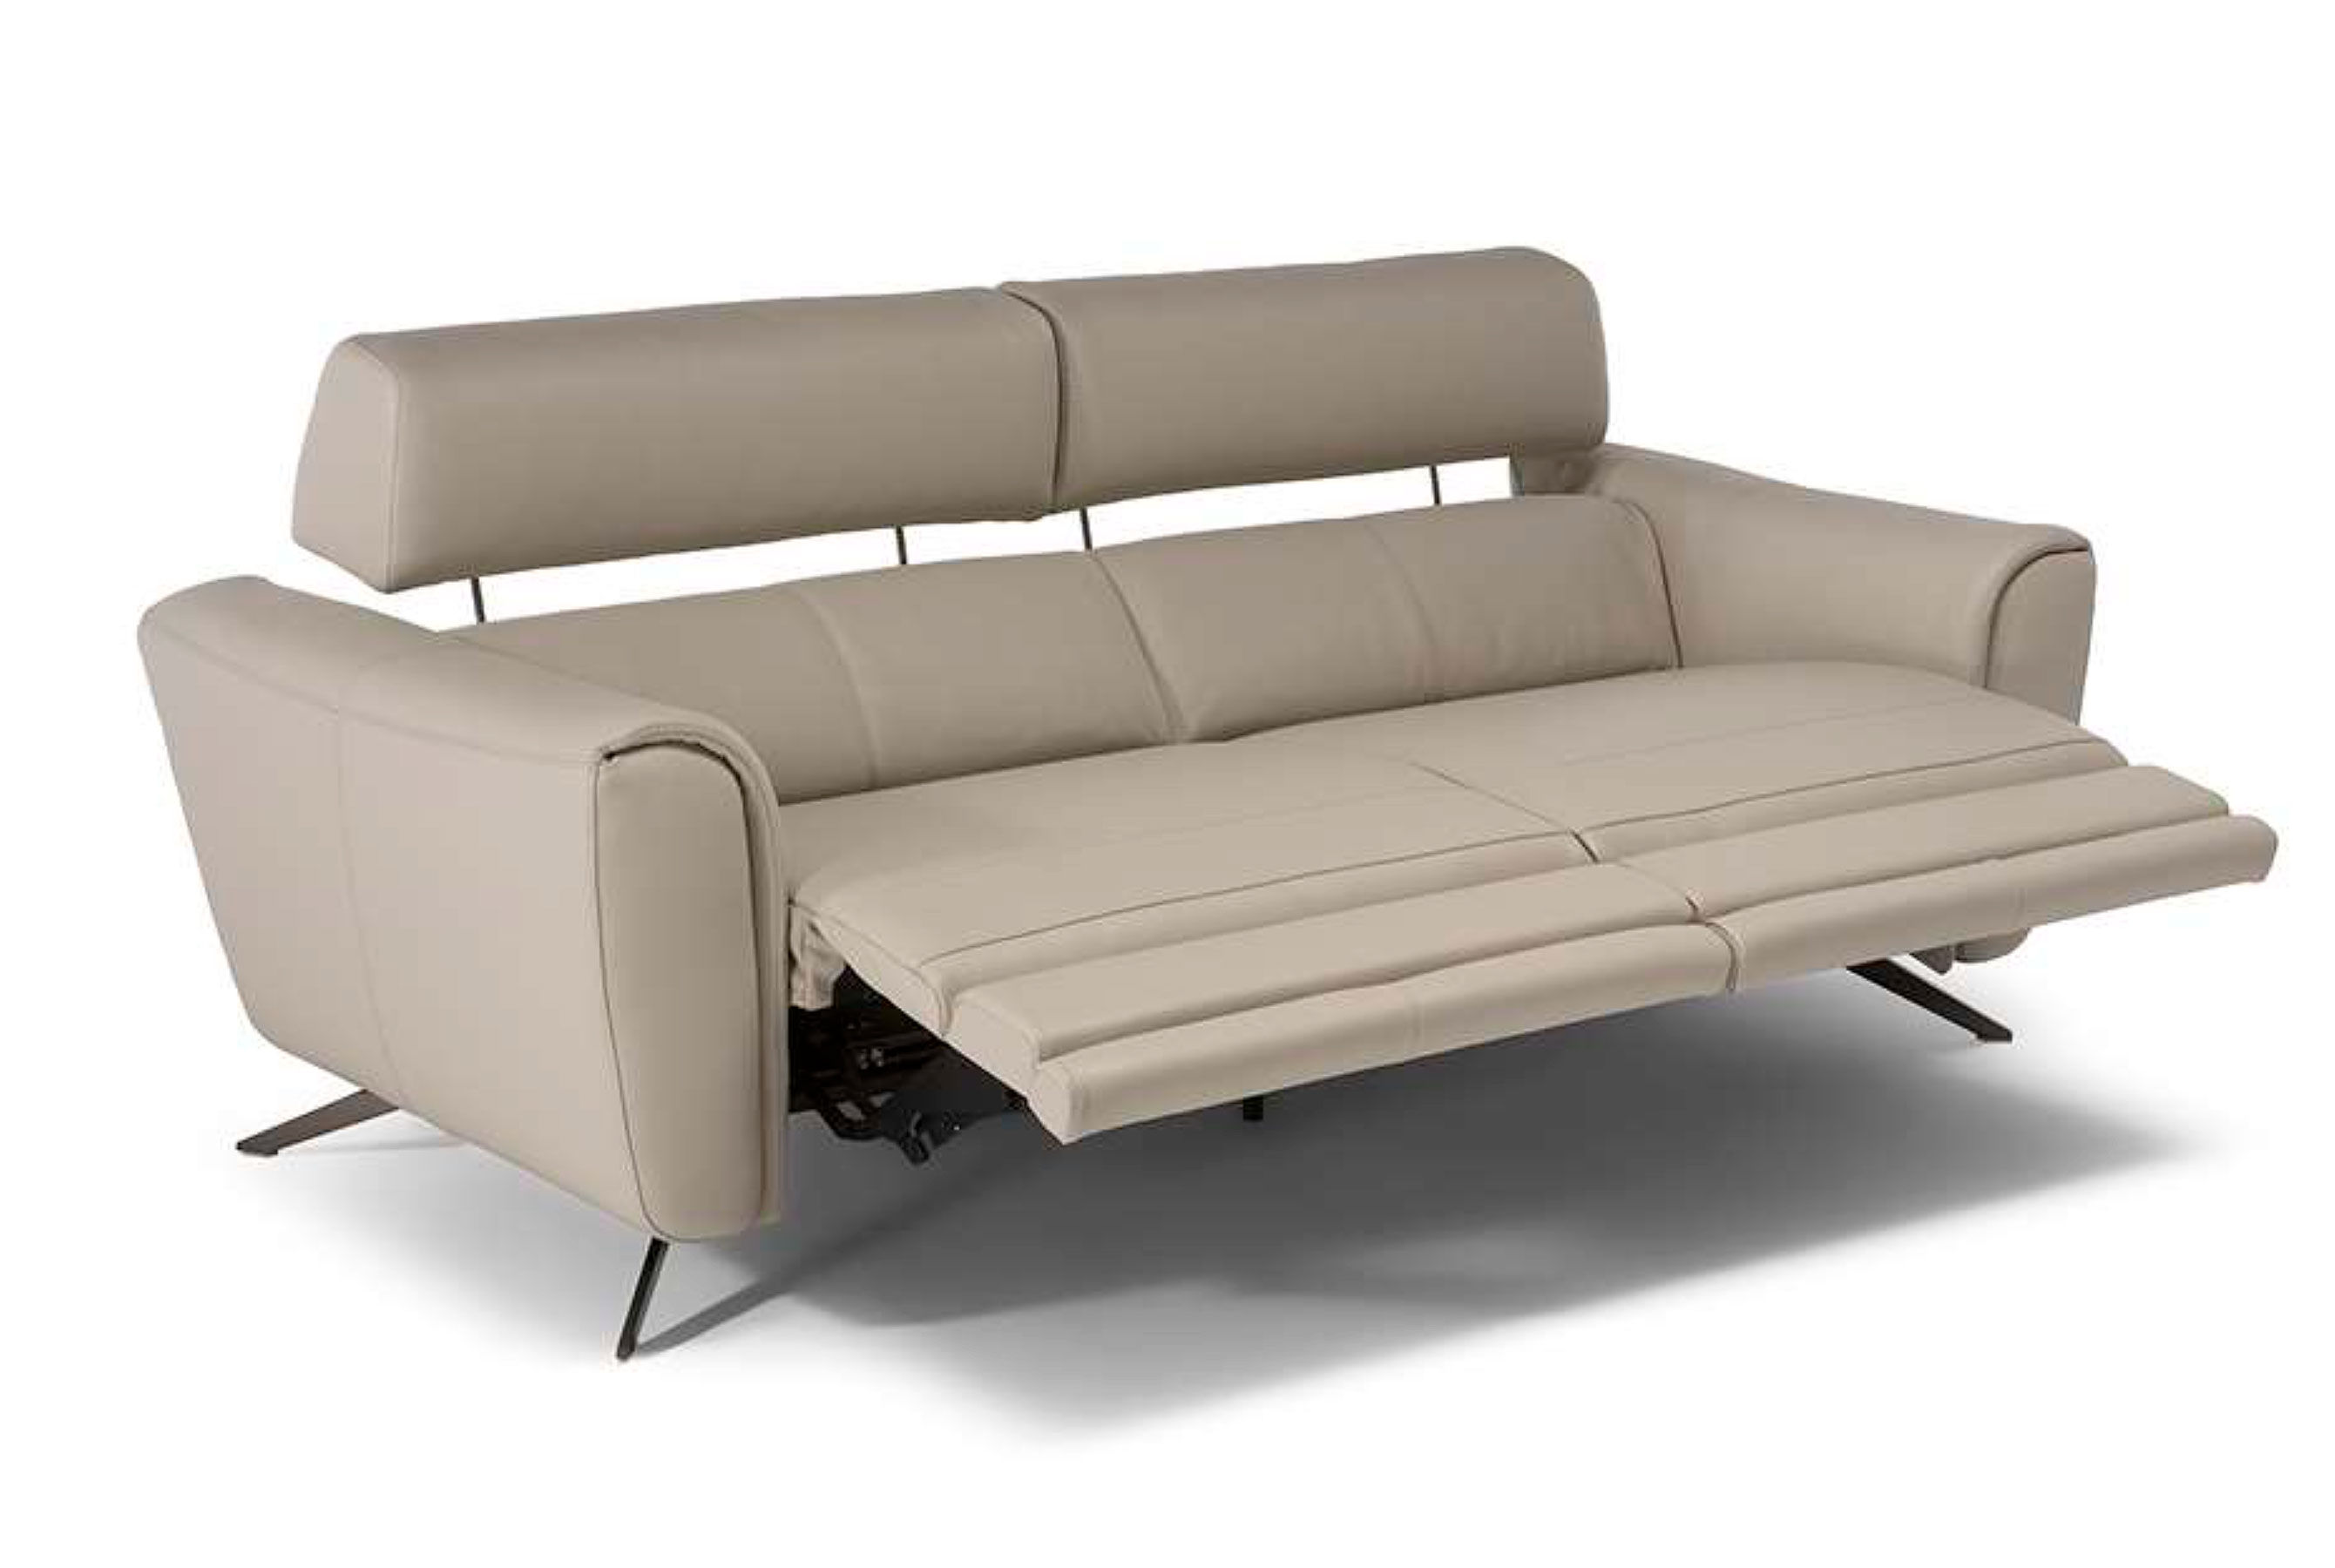 chicago photo furniture patio full ideass futons inspirations of wi store milwaukeere list ideas consignment tremendous futon contemporary ashley wisconsin size stores beautiful in wisconsinfurniture madison baby